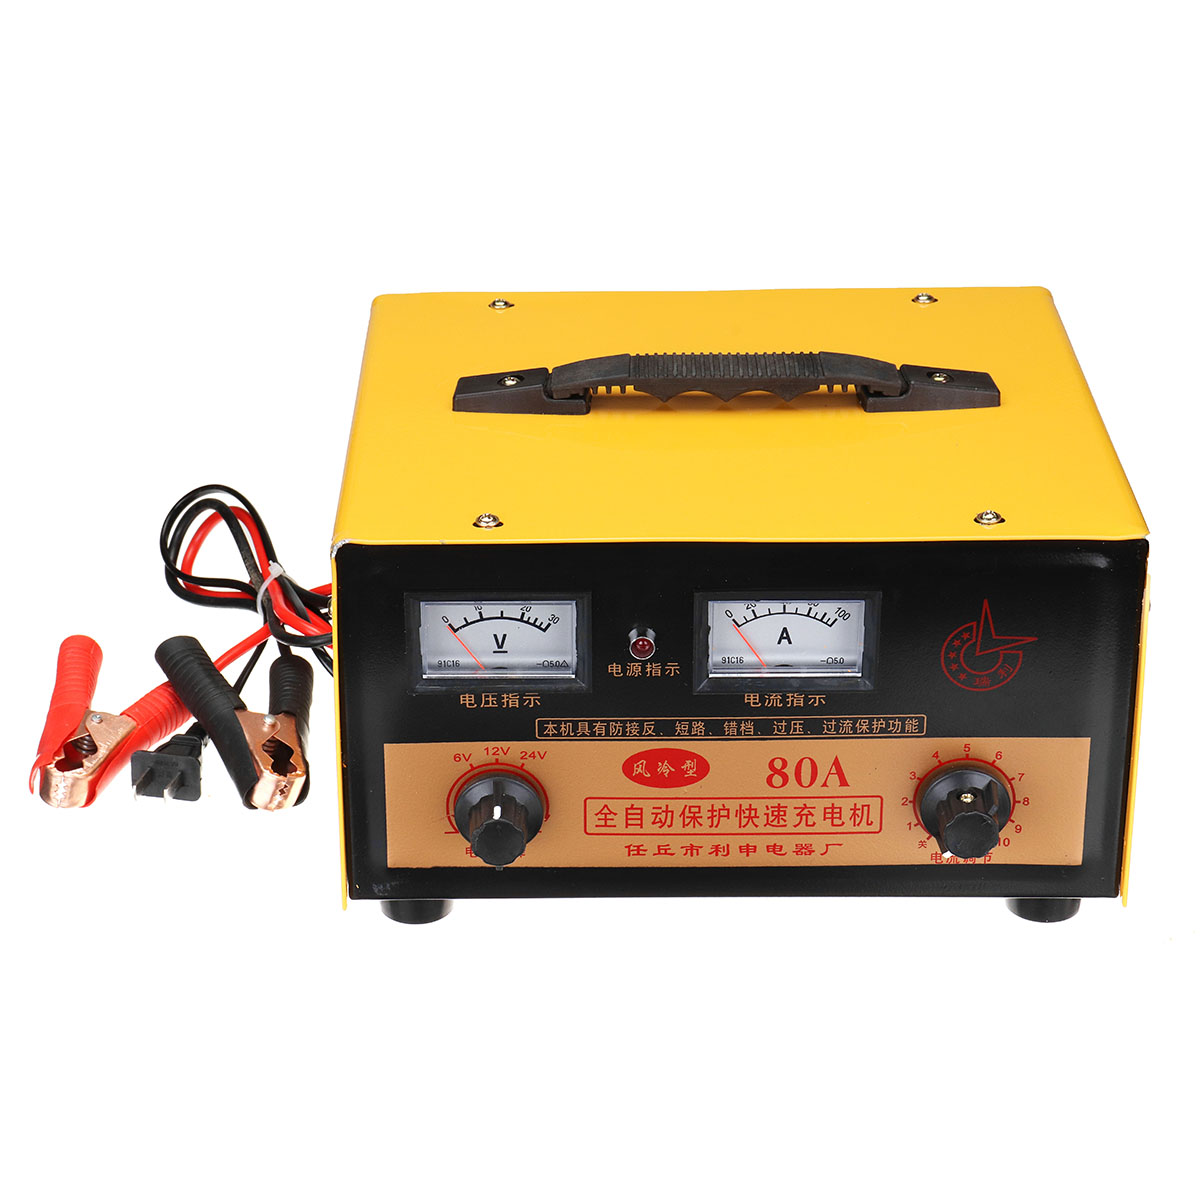 12V 24V 60A And 80A Automatic Protection Fast Charger Car Truck Motorcycle Battery Charger